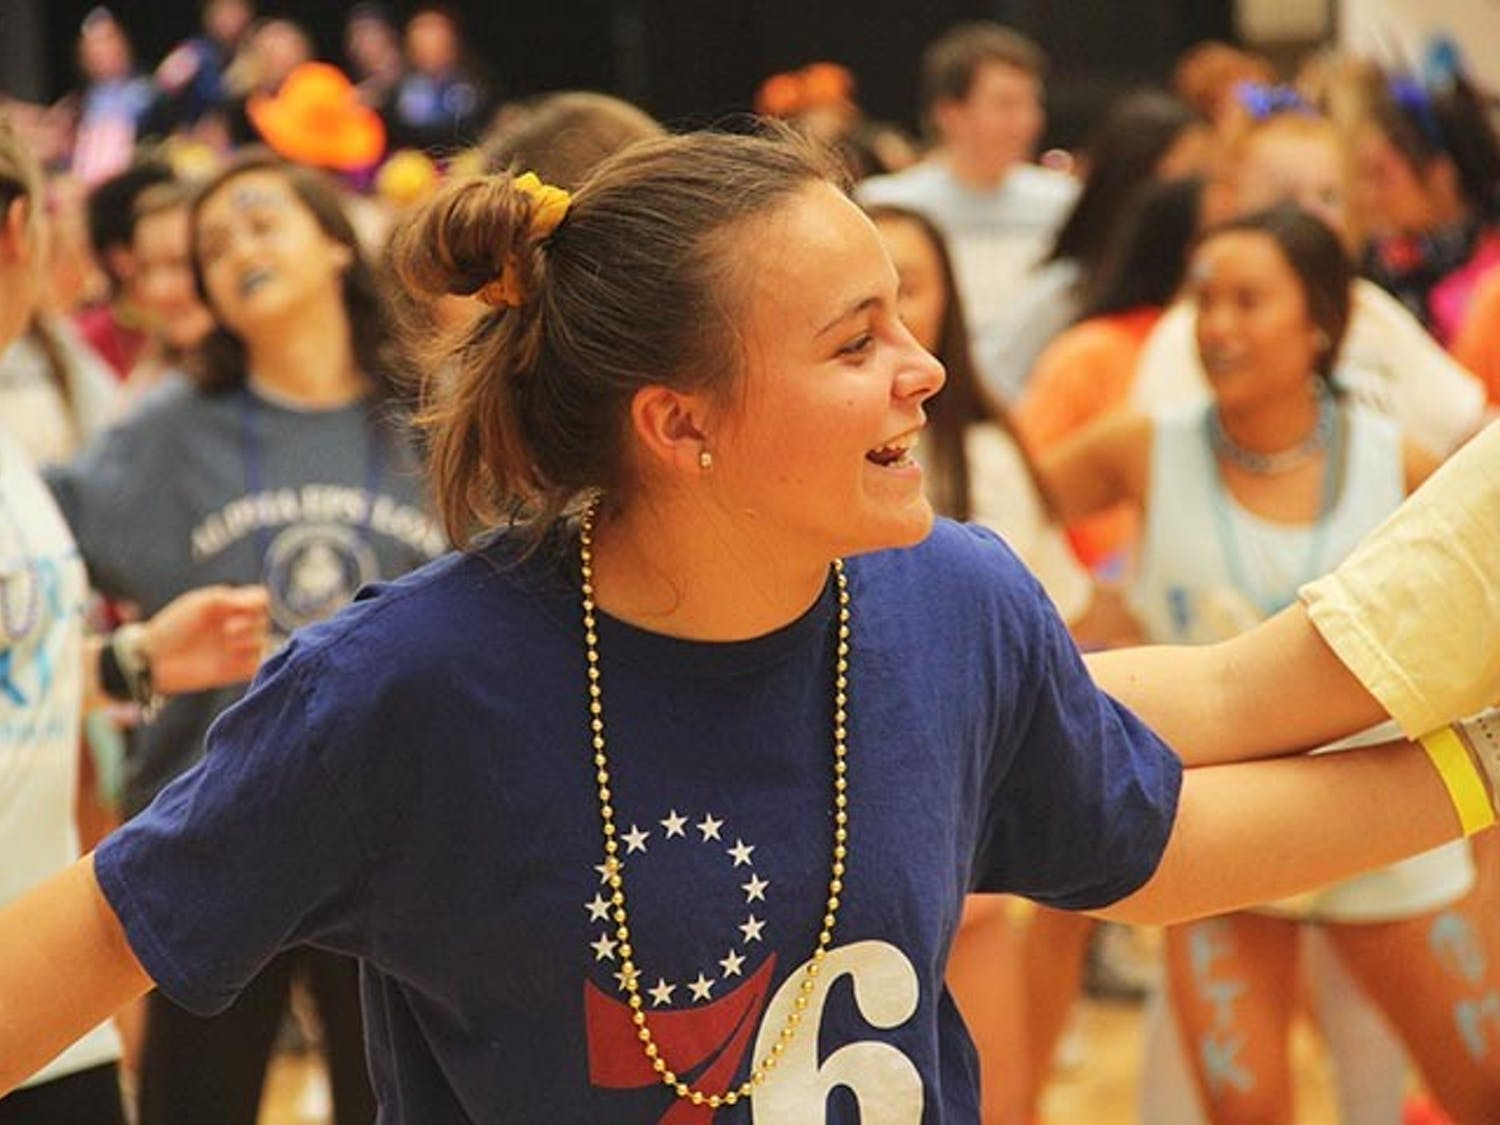 Second-year marketing student Morgan Lill learns a routine at Dance Marathon on Friday, Feb. 29, 2020